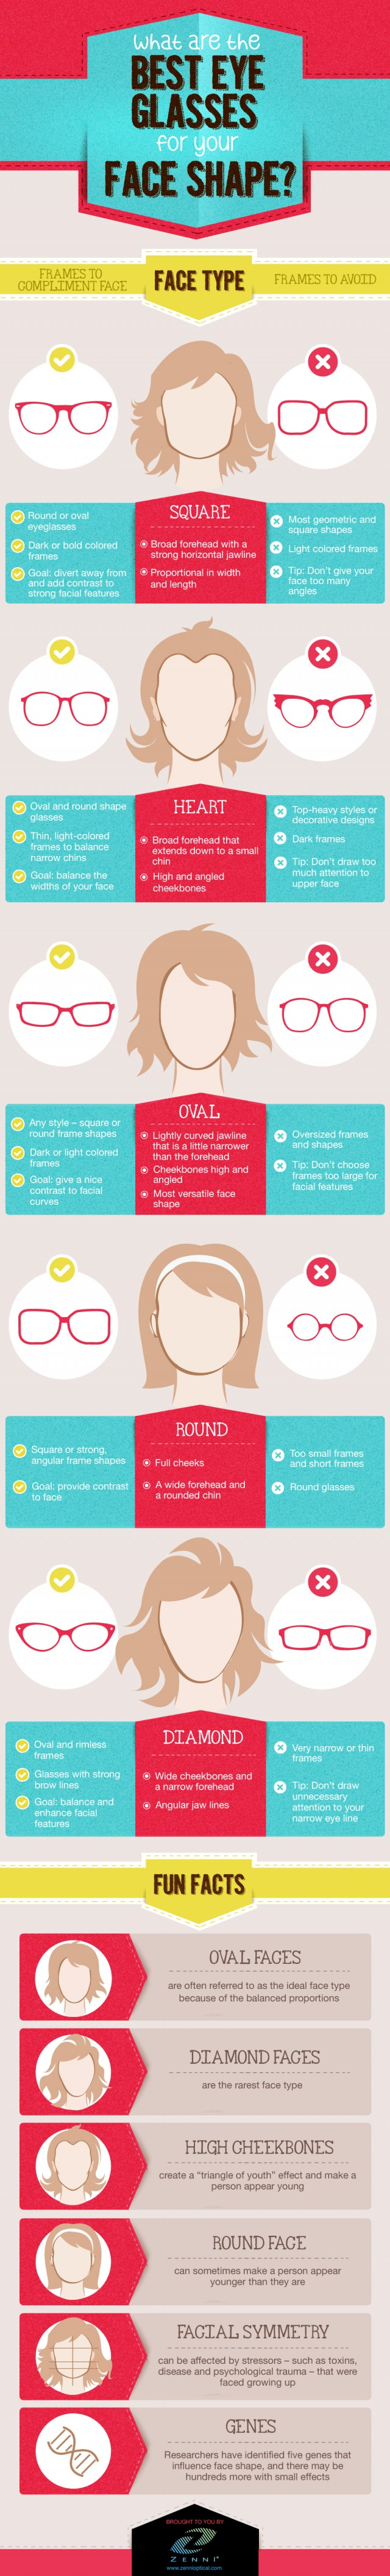 what-are-the-best-eyeglasses-for-your-face-shape_52aa35d405be71-640x4225